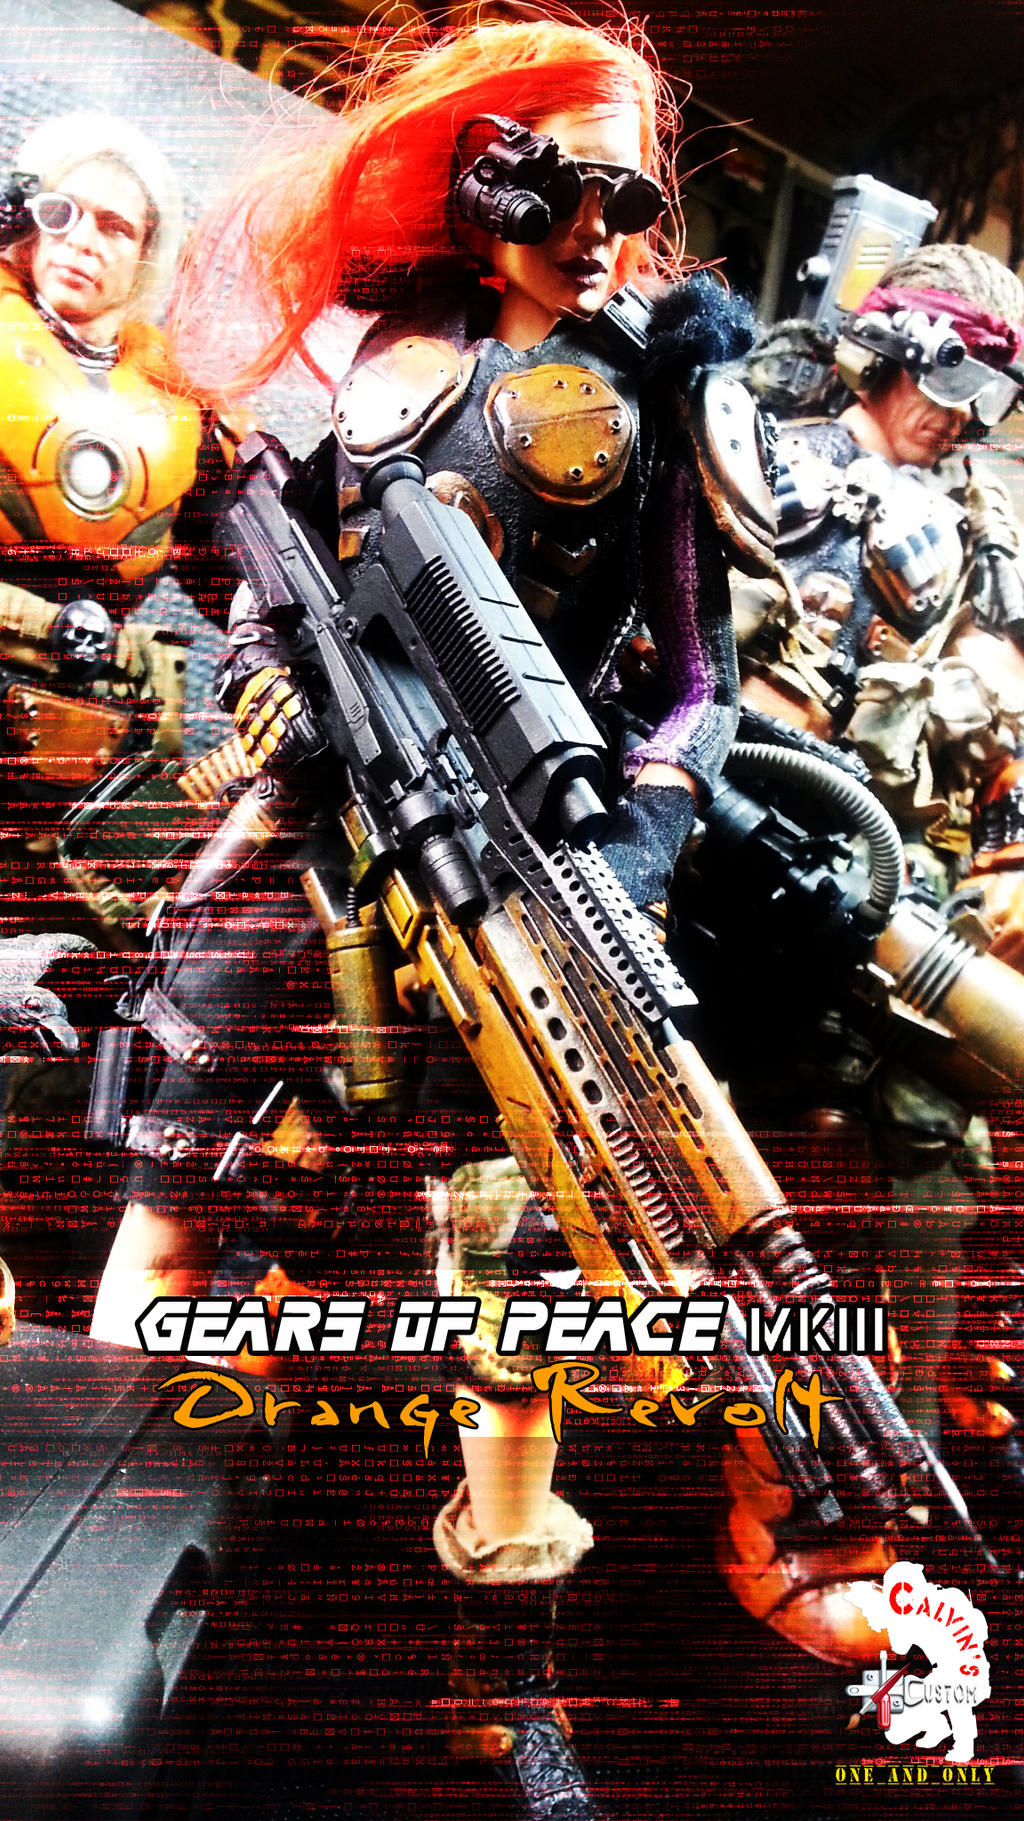 GEARS of PEACE MK III ~ Orange Revolt by CalvinsCustom